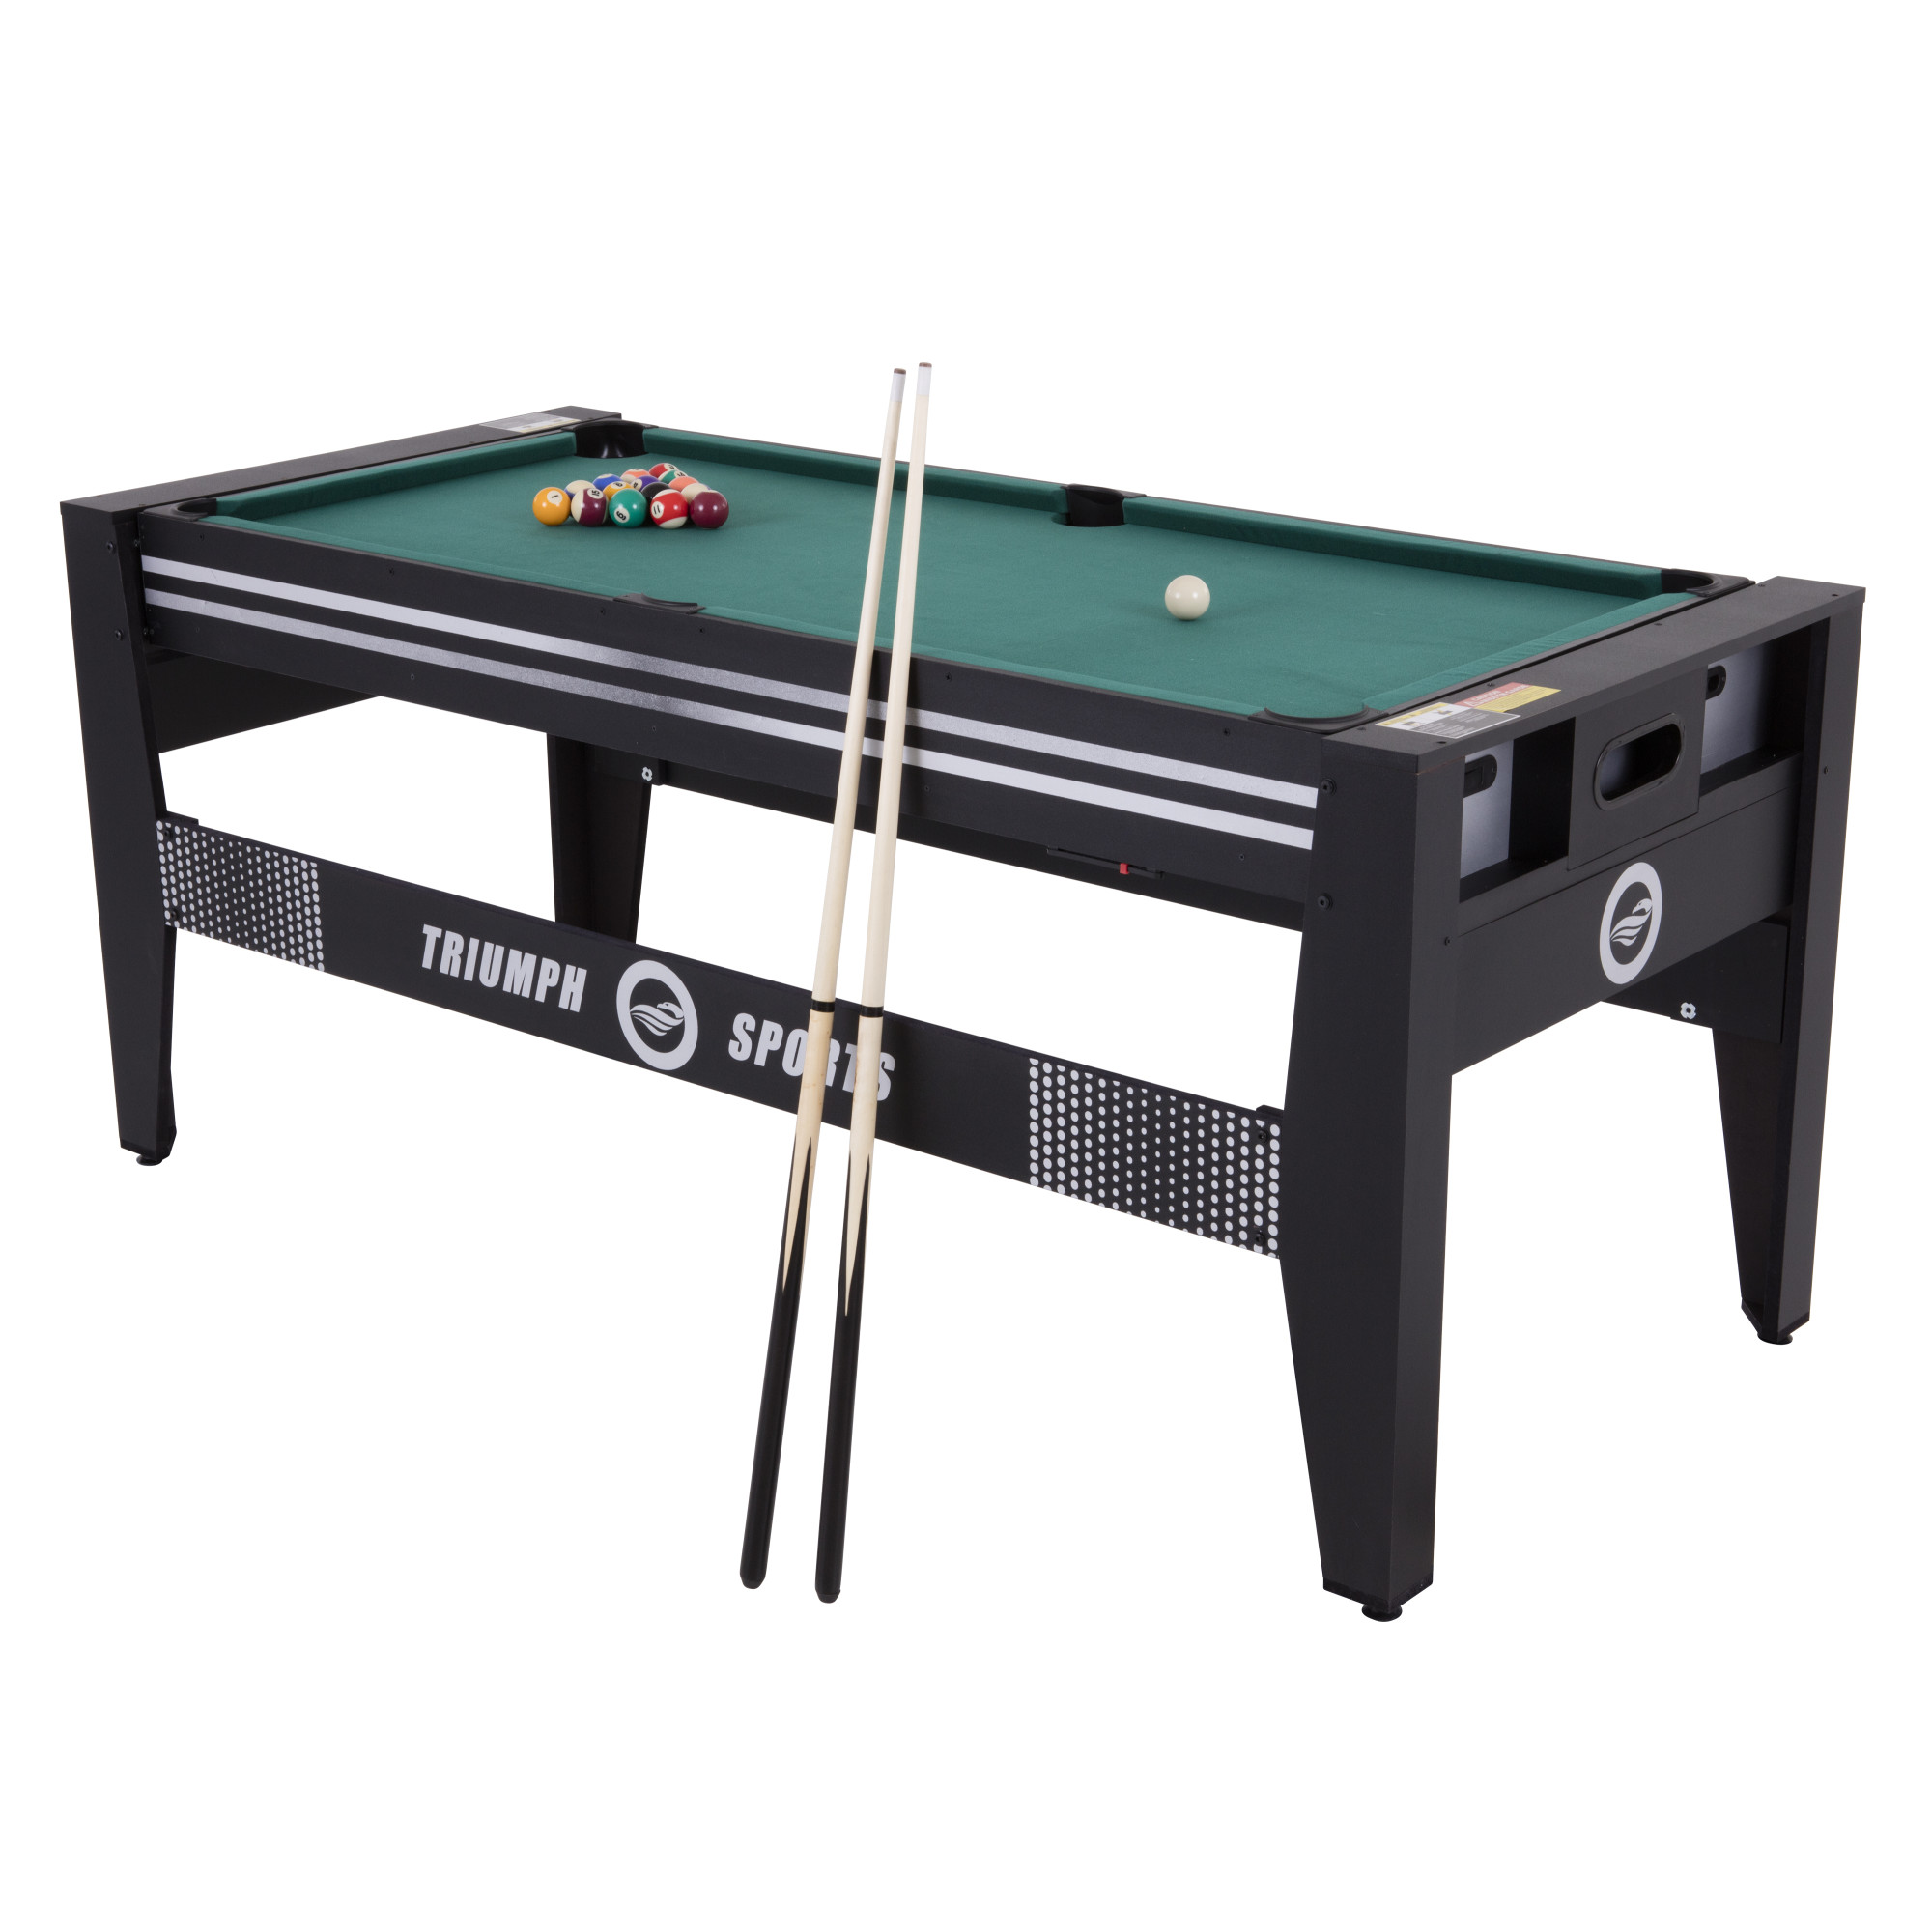 "Triumph 72"" 4 in 1 Multi-Game Swivel Table with Air-Powered Hockey, Table Tennis, Billiards, and Launch Football"